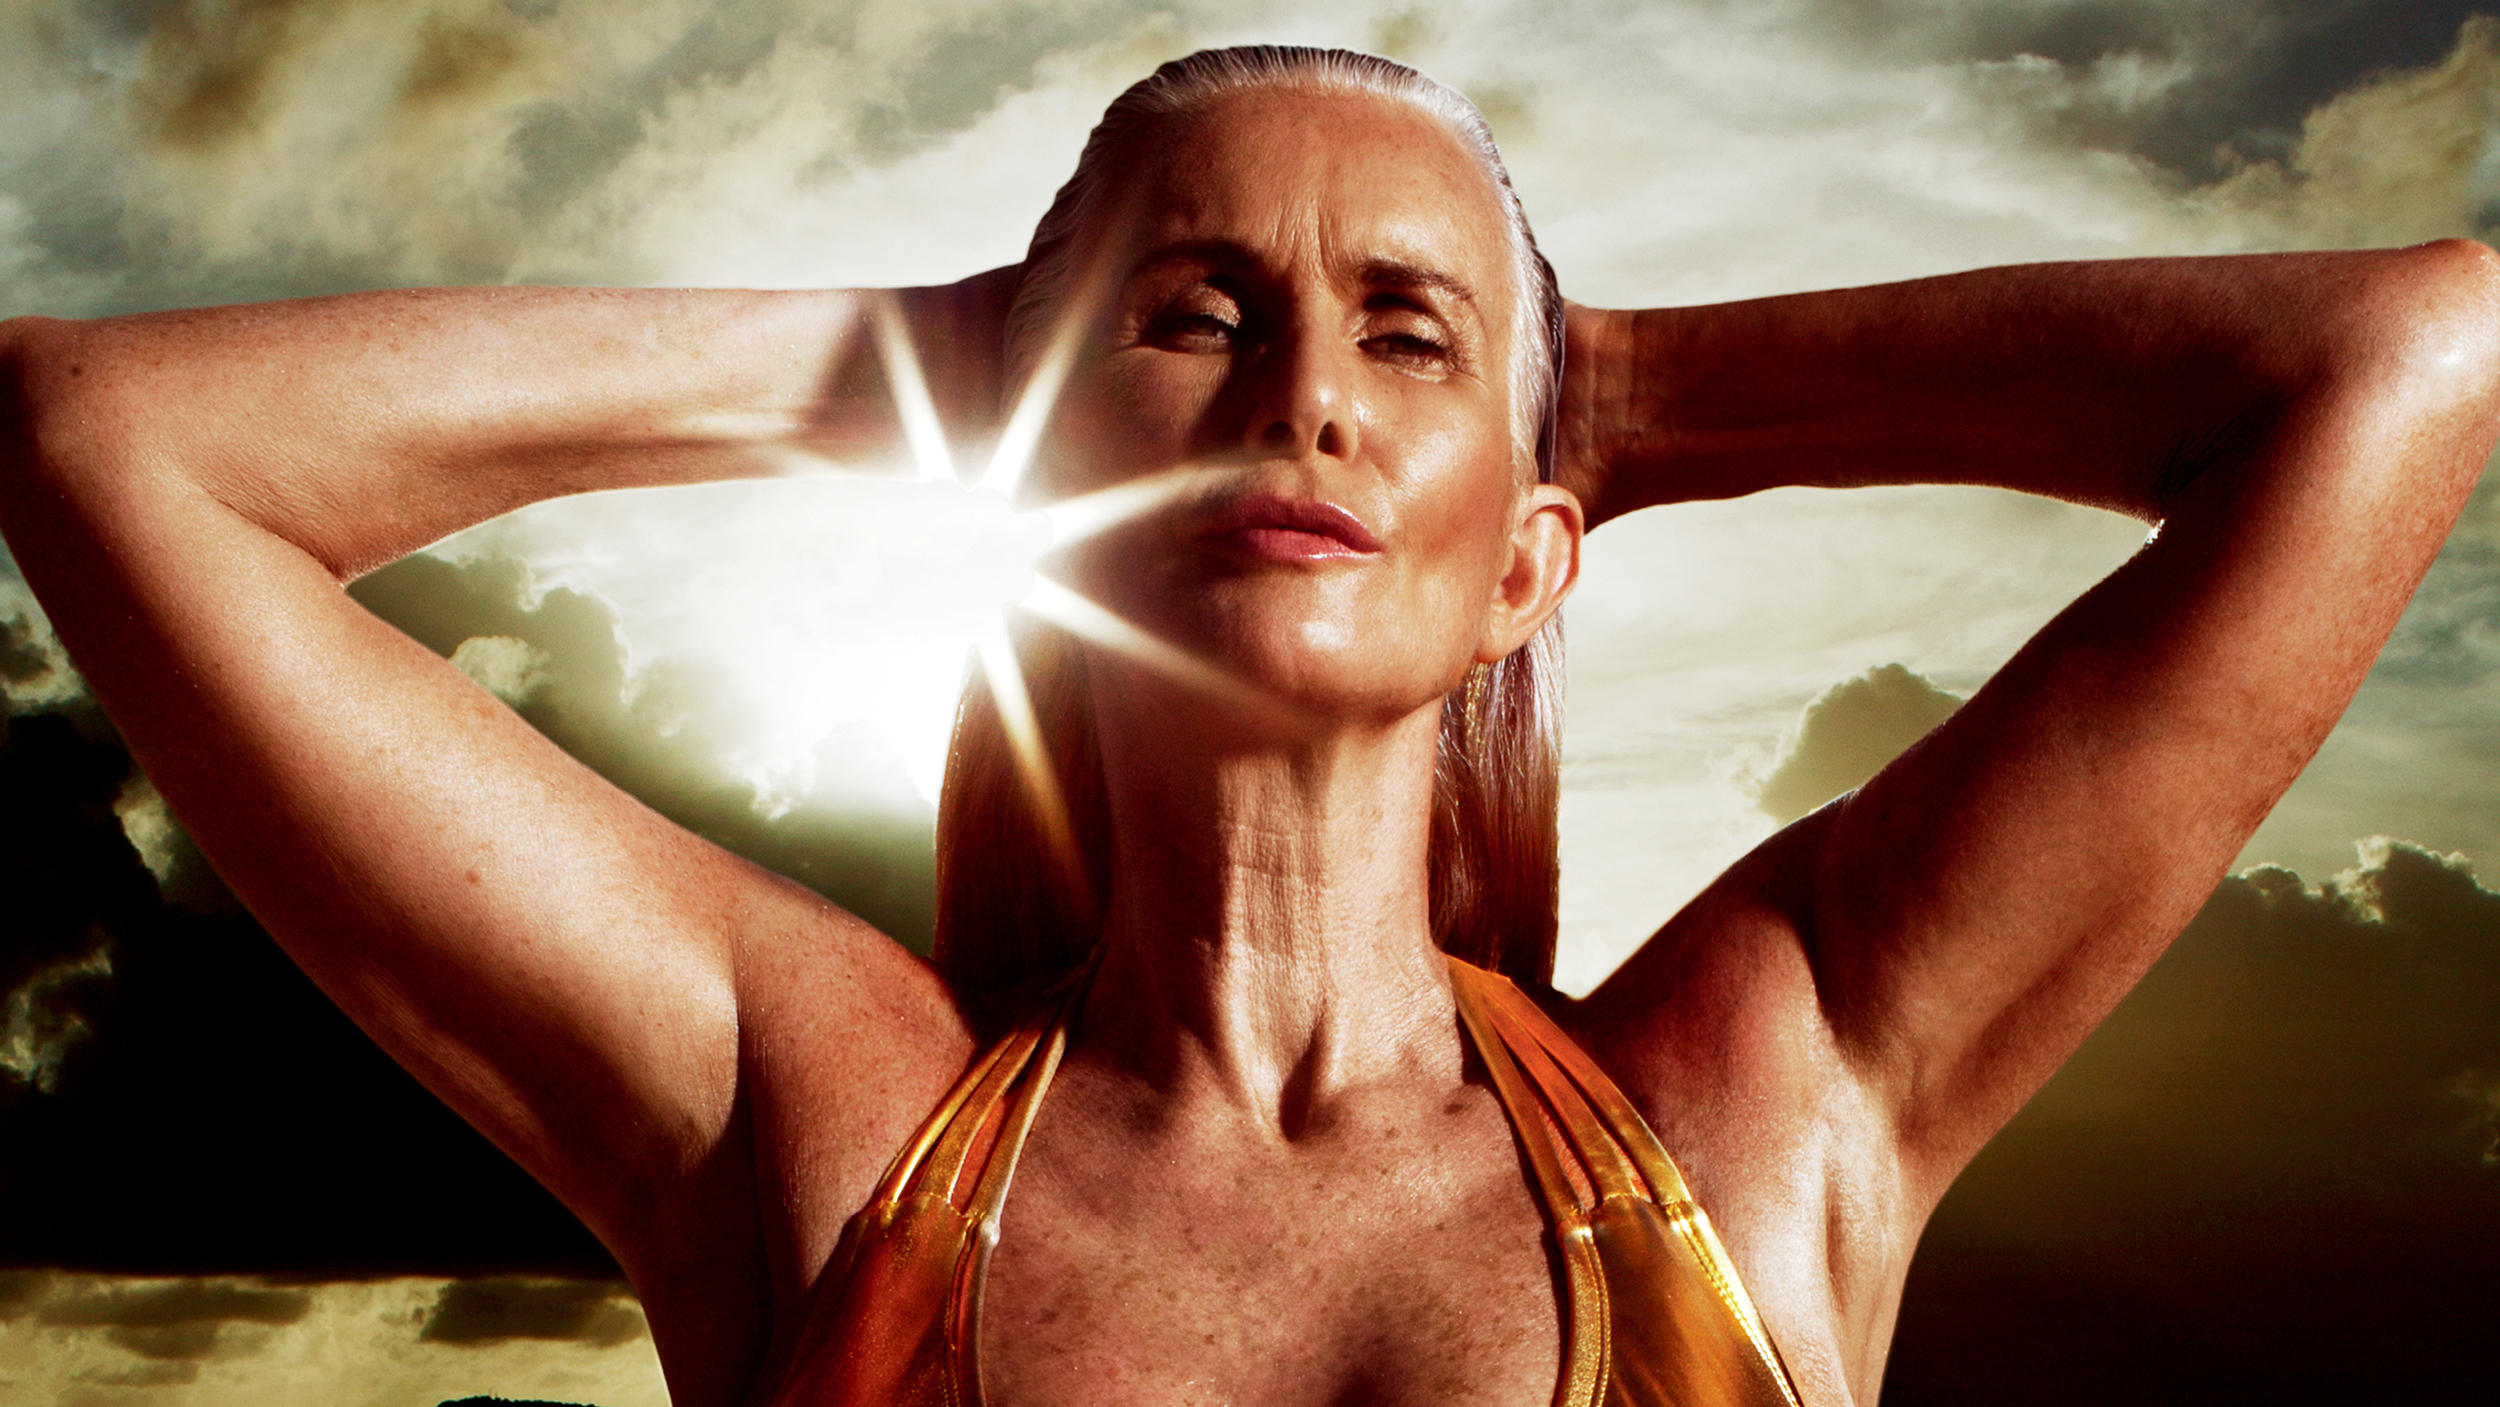 Sports Illustrated Features 56-Year-Old Model In Annual Swimsuit Issue-8076